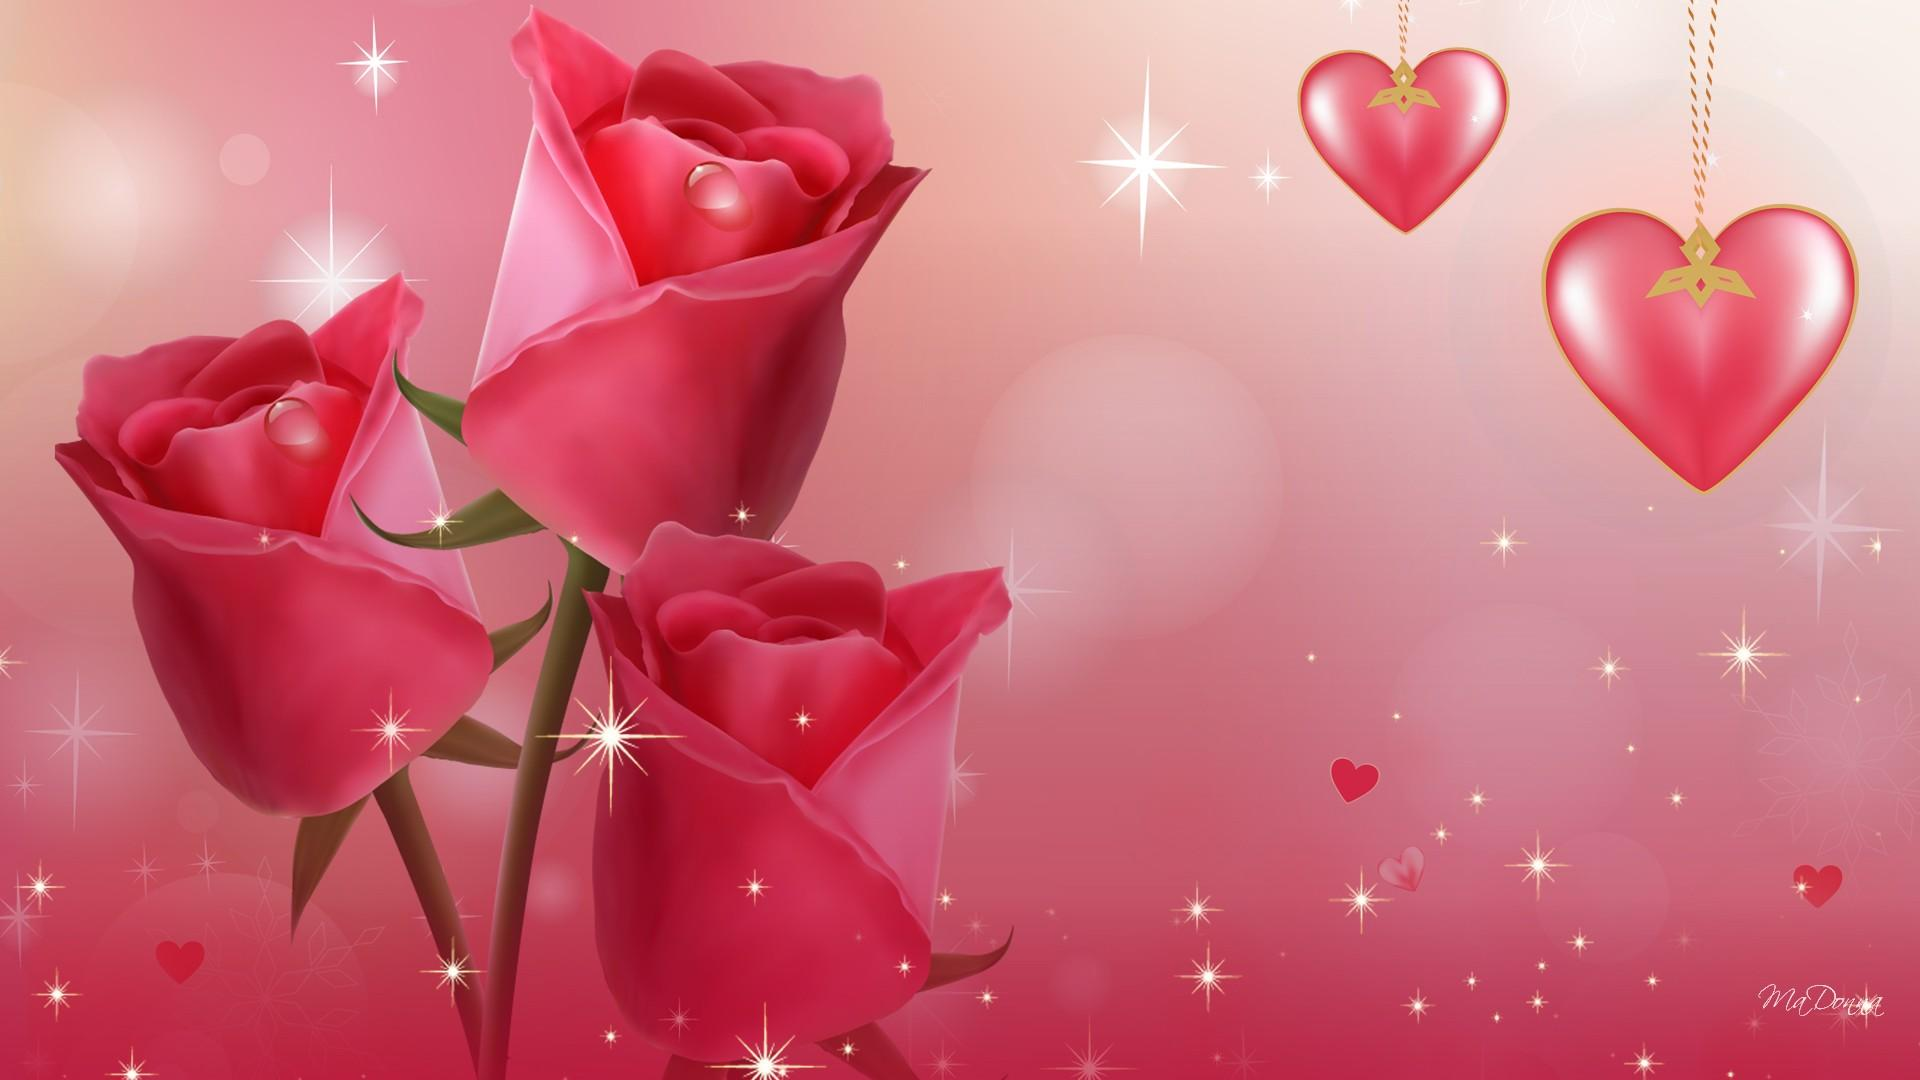 Beautiful Love Wallpaper HD - WallpaperSafari